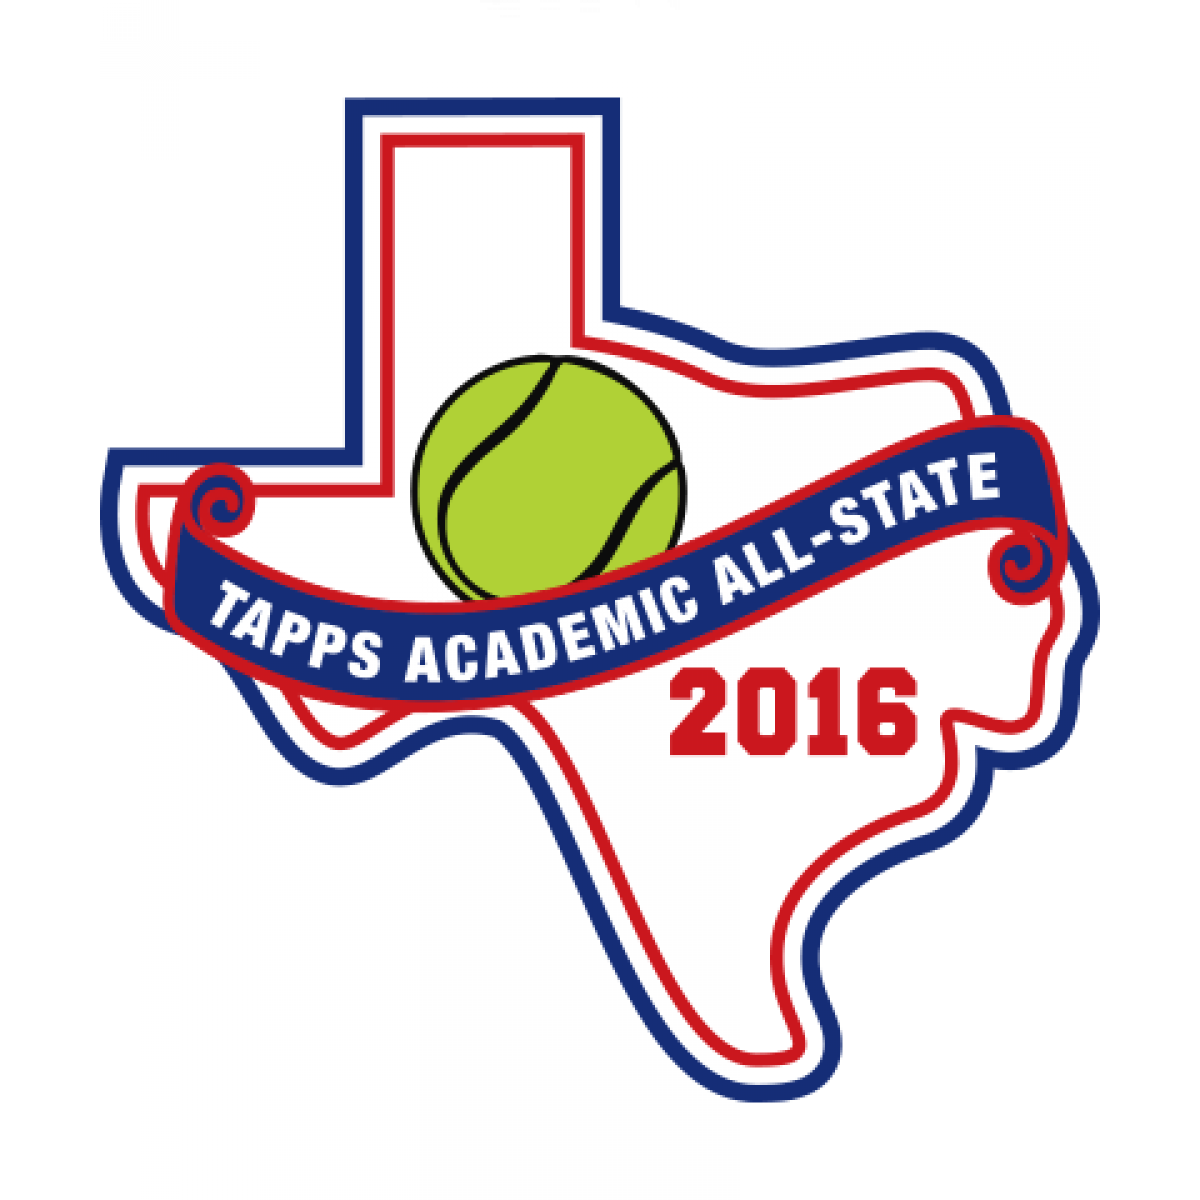 Felt TAPPS 2016 Tennis Academic All-State Patch